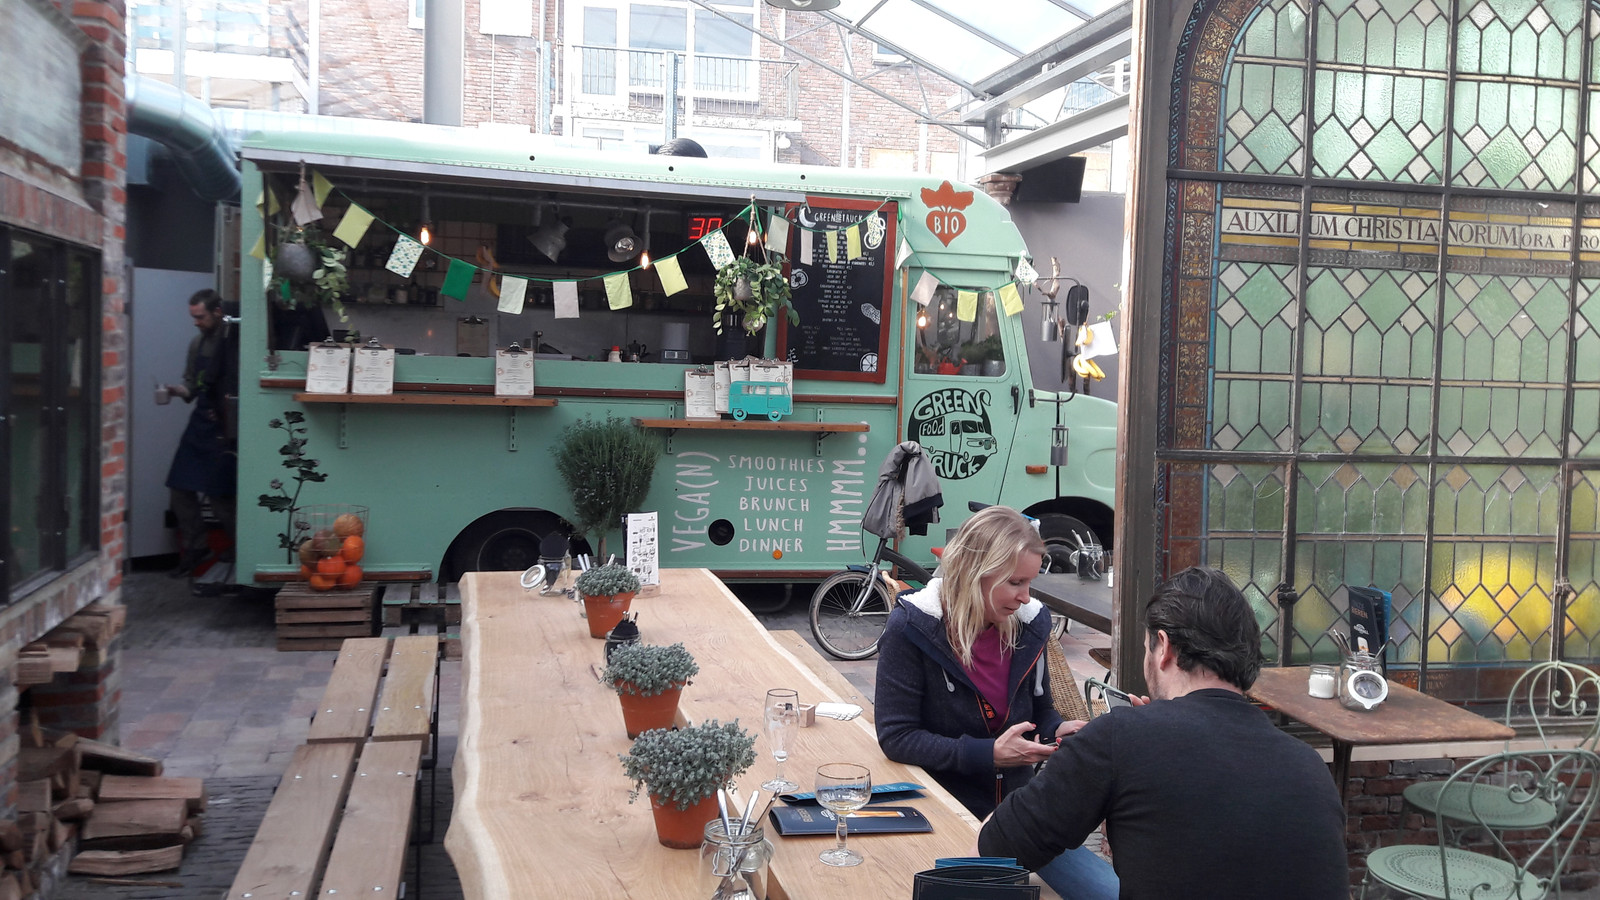 De enige foodtruck in de Foodhall Arnhem.